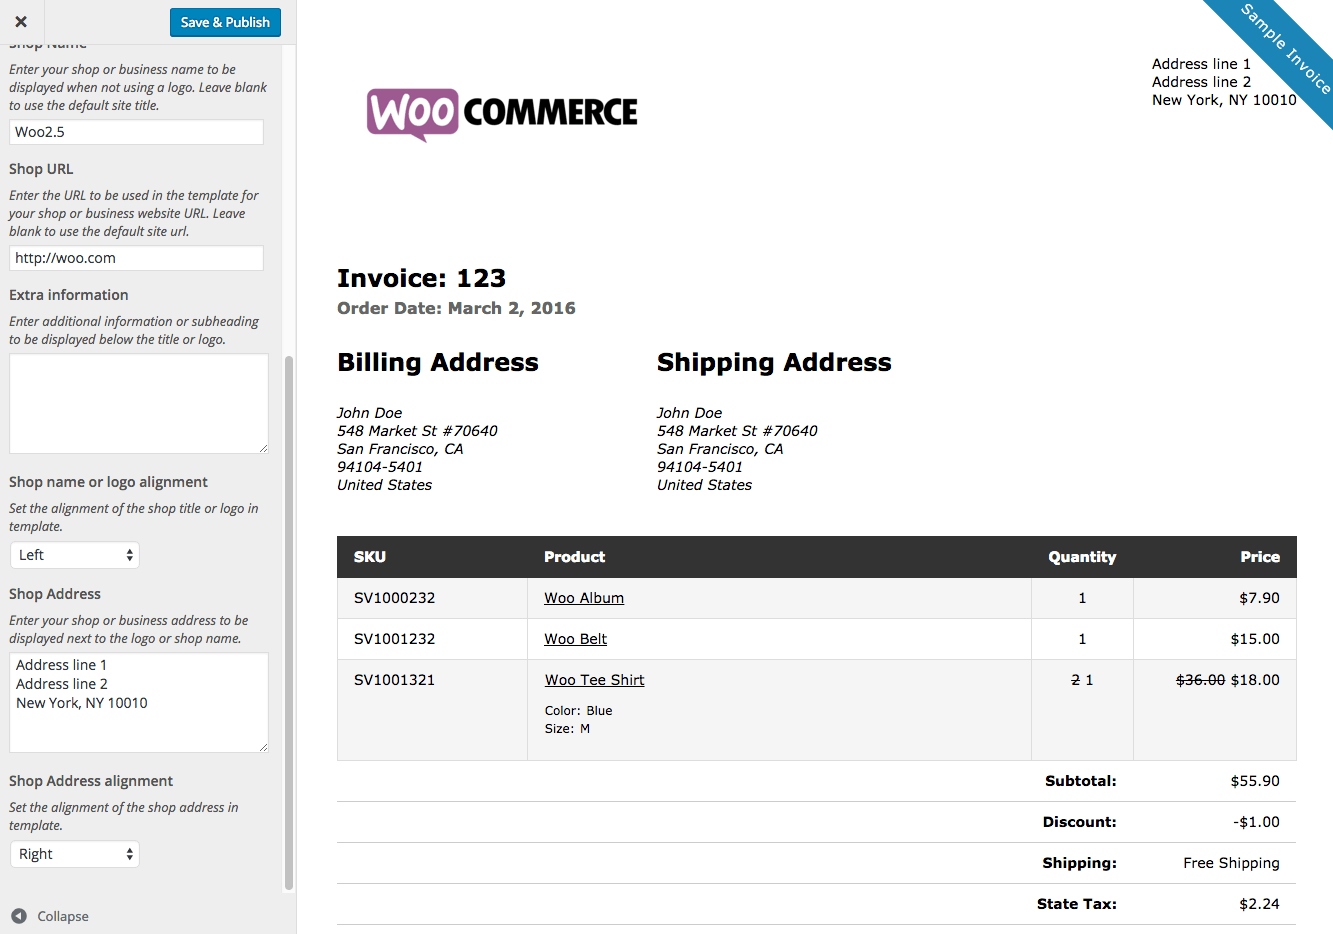 Usdgus  Unusual Print Invoices Amp Packing Lists  Woocommerce With Excellent Woocommerce Print Invoices  Packing Lists Customizer With Breathtaking Sweet Potato Receipt Also Lic Insurance Premium Receipt Online In Addition Credit Card Payment Receipt Template And Mac Receipt As Well As What Is The Tracking Number On A Post Office Receipt Additionally Hra Receipt Format From Woocommercecom With Usdgus  Excellent Print Invoices Amp Packing Lists  Woocommerce With Breathtaking Woocommerce Print Invoices  Packing Lists Customizer And Unusual Sweet Potato Receipt Also Lic Insurance Premium Receipt Online In Addition Credit Card Payment Receipt Template From Woocommercecom